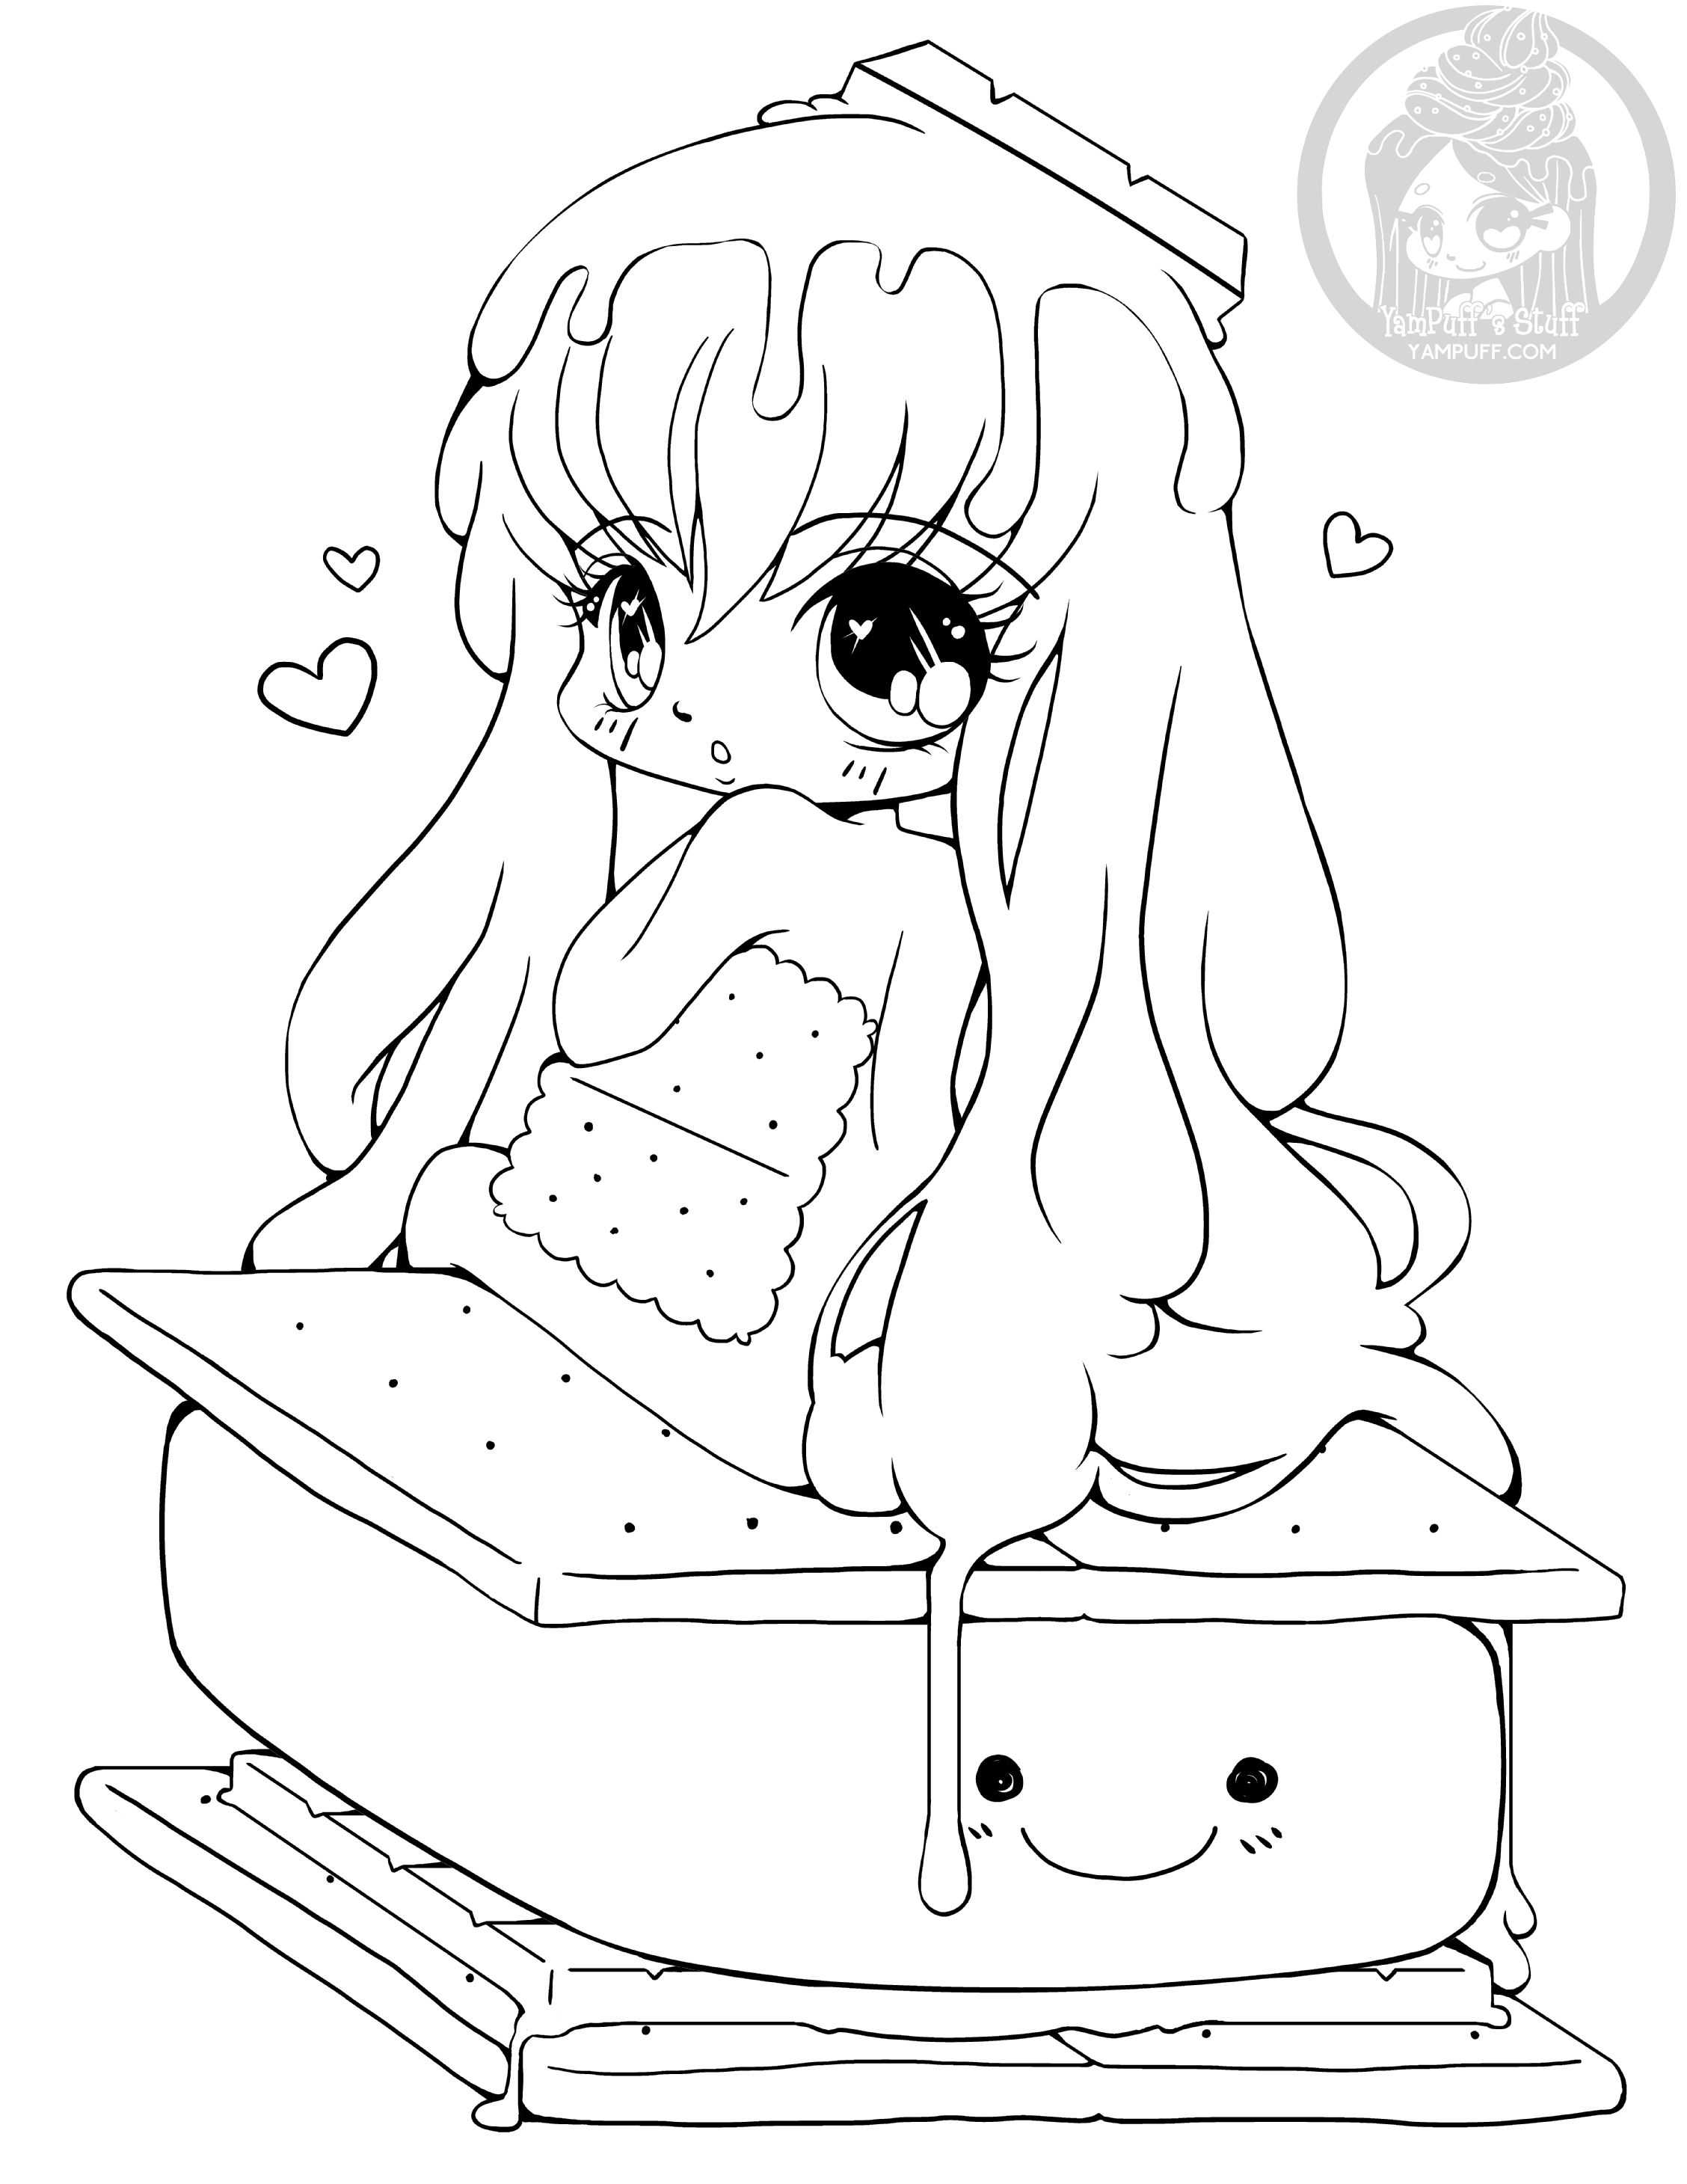 chibi pictures chibis free chibi coloring pages yampuff39s stuff chibi pictures 1 1